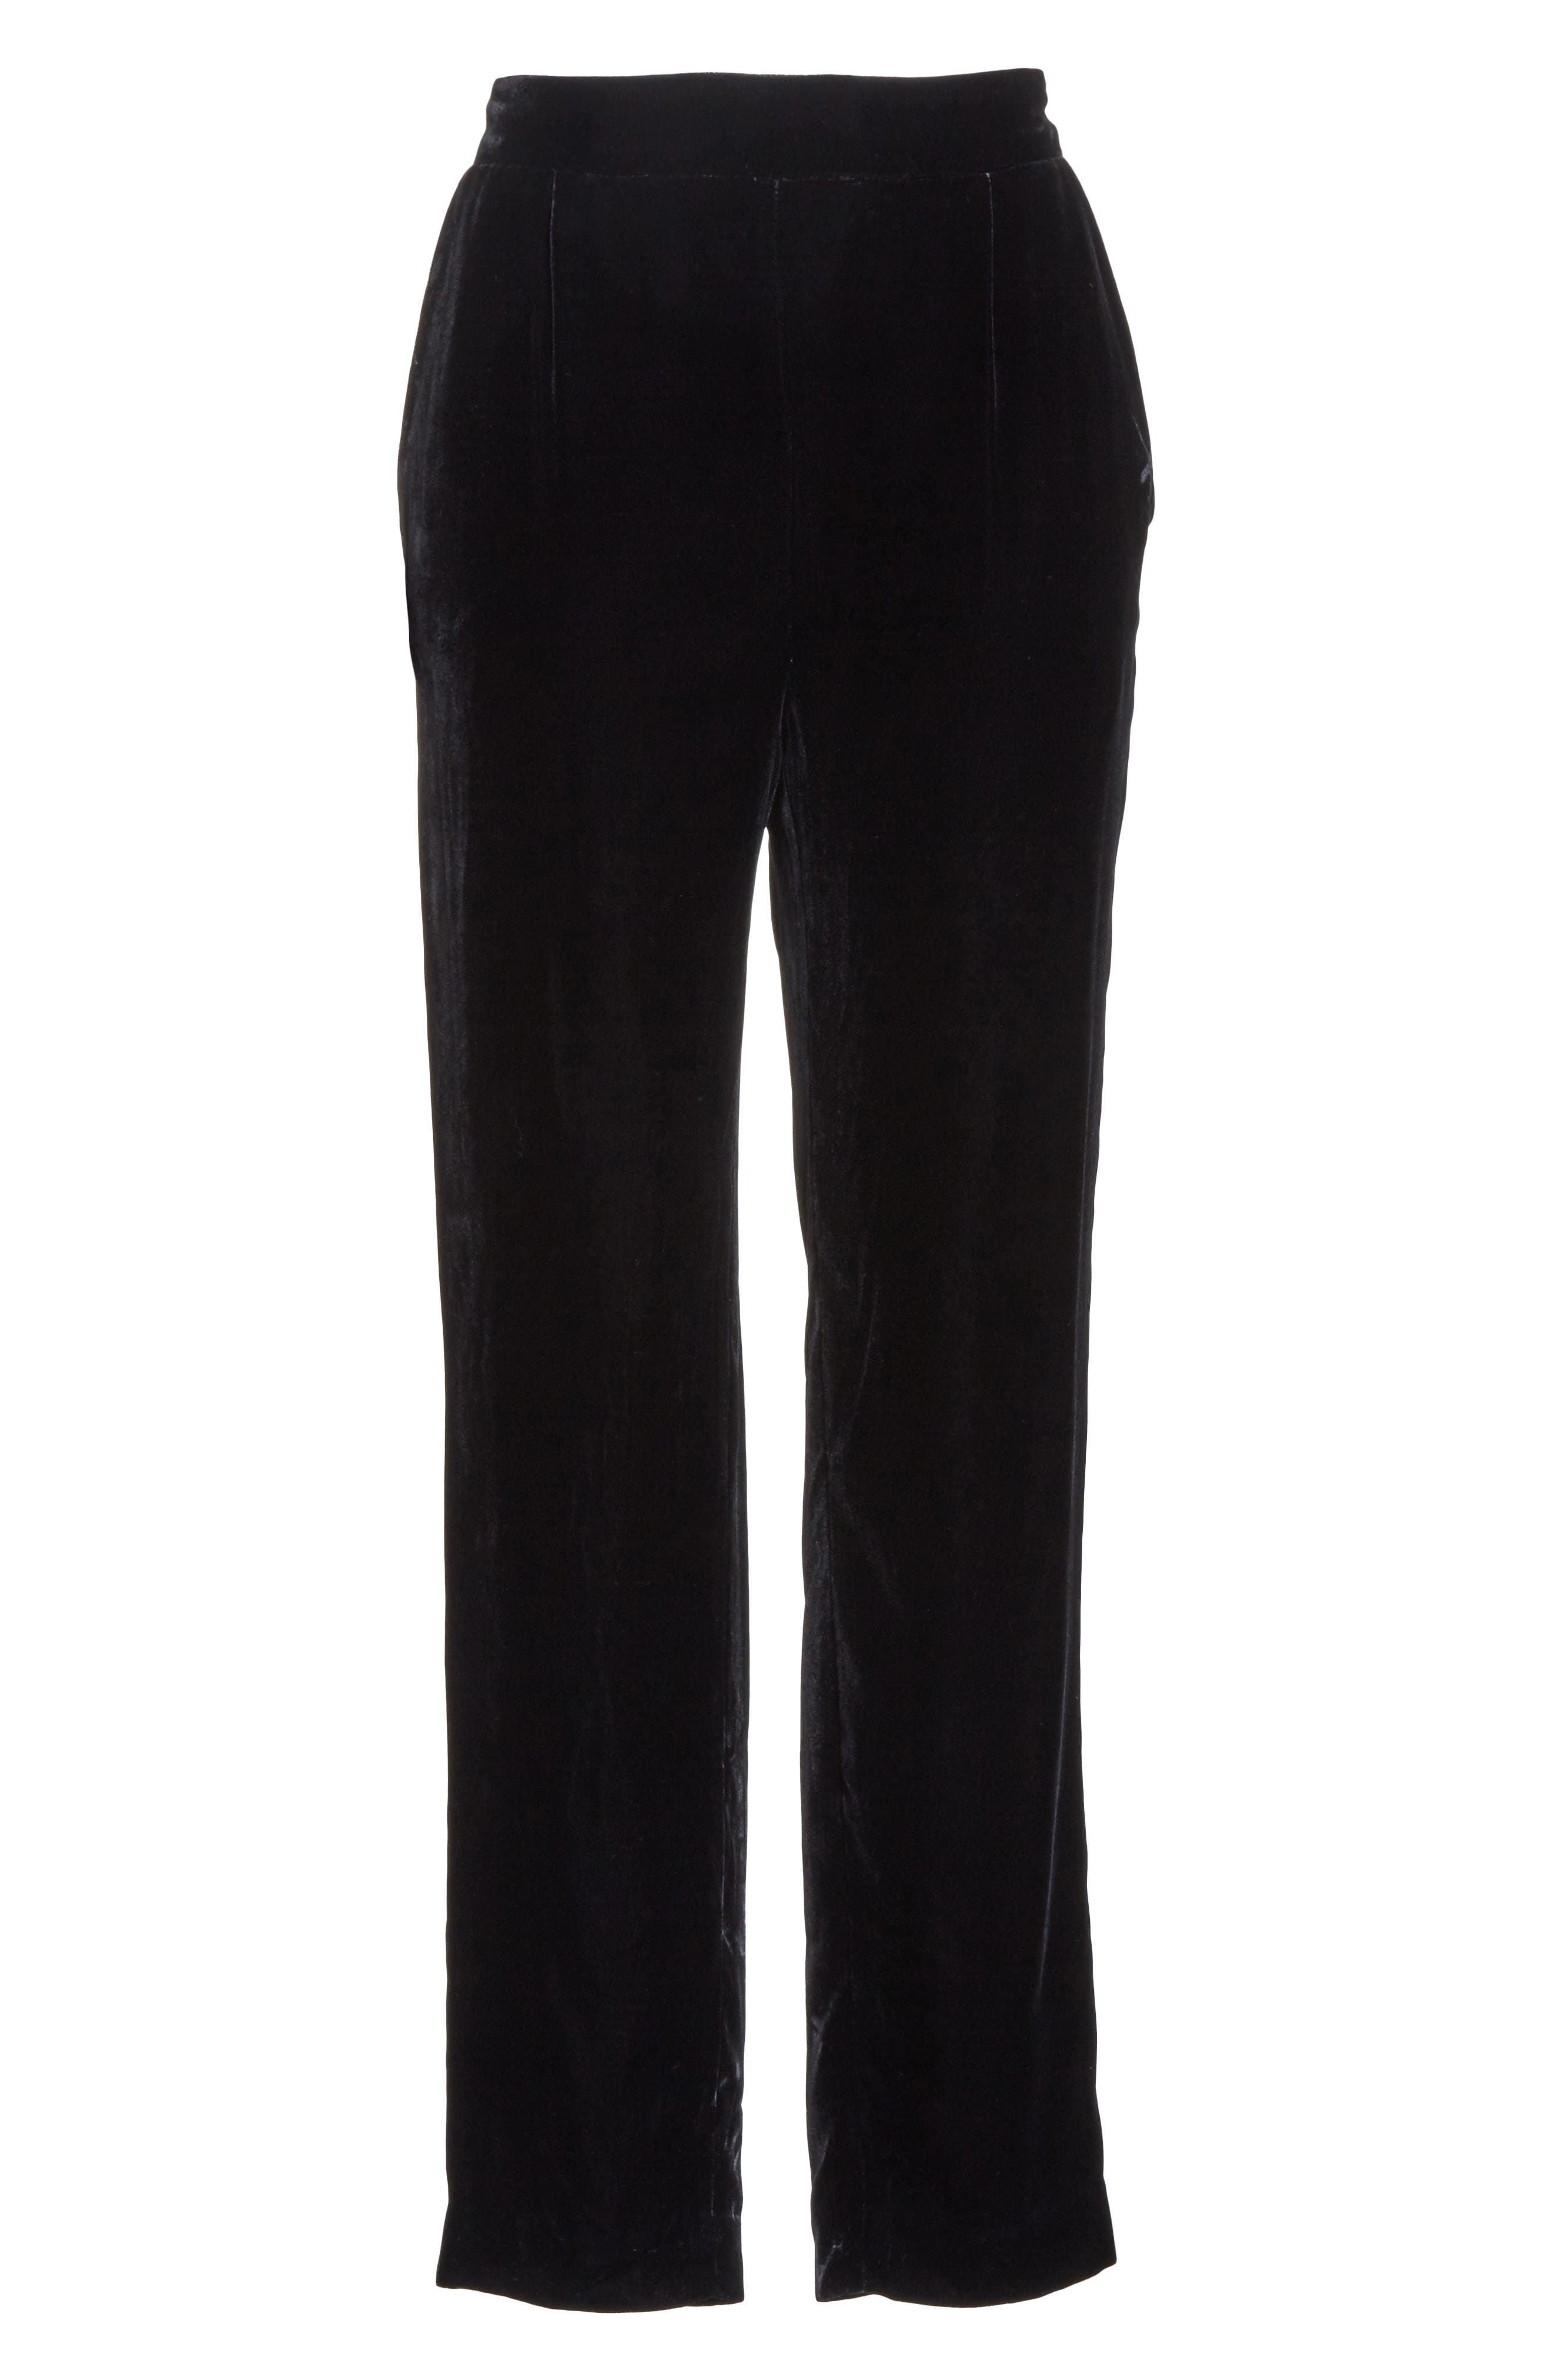 Single Pleat Pull-On Trousers,                             Alternate thumbnail 6, color,                             001